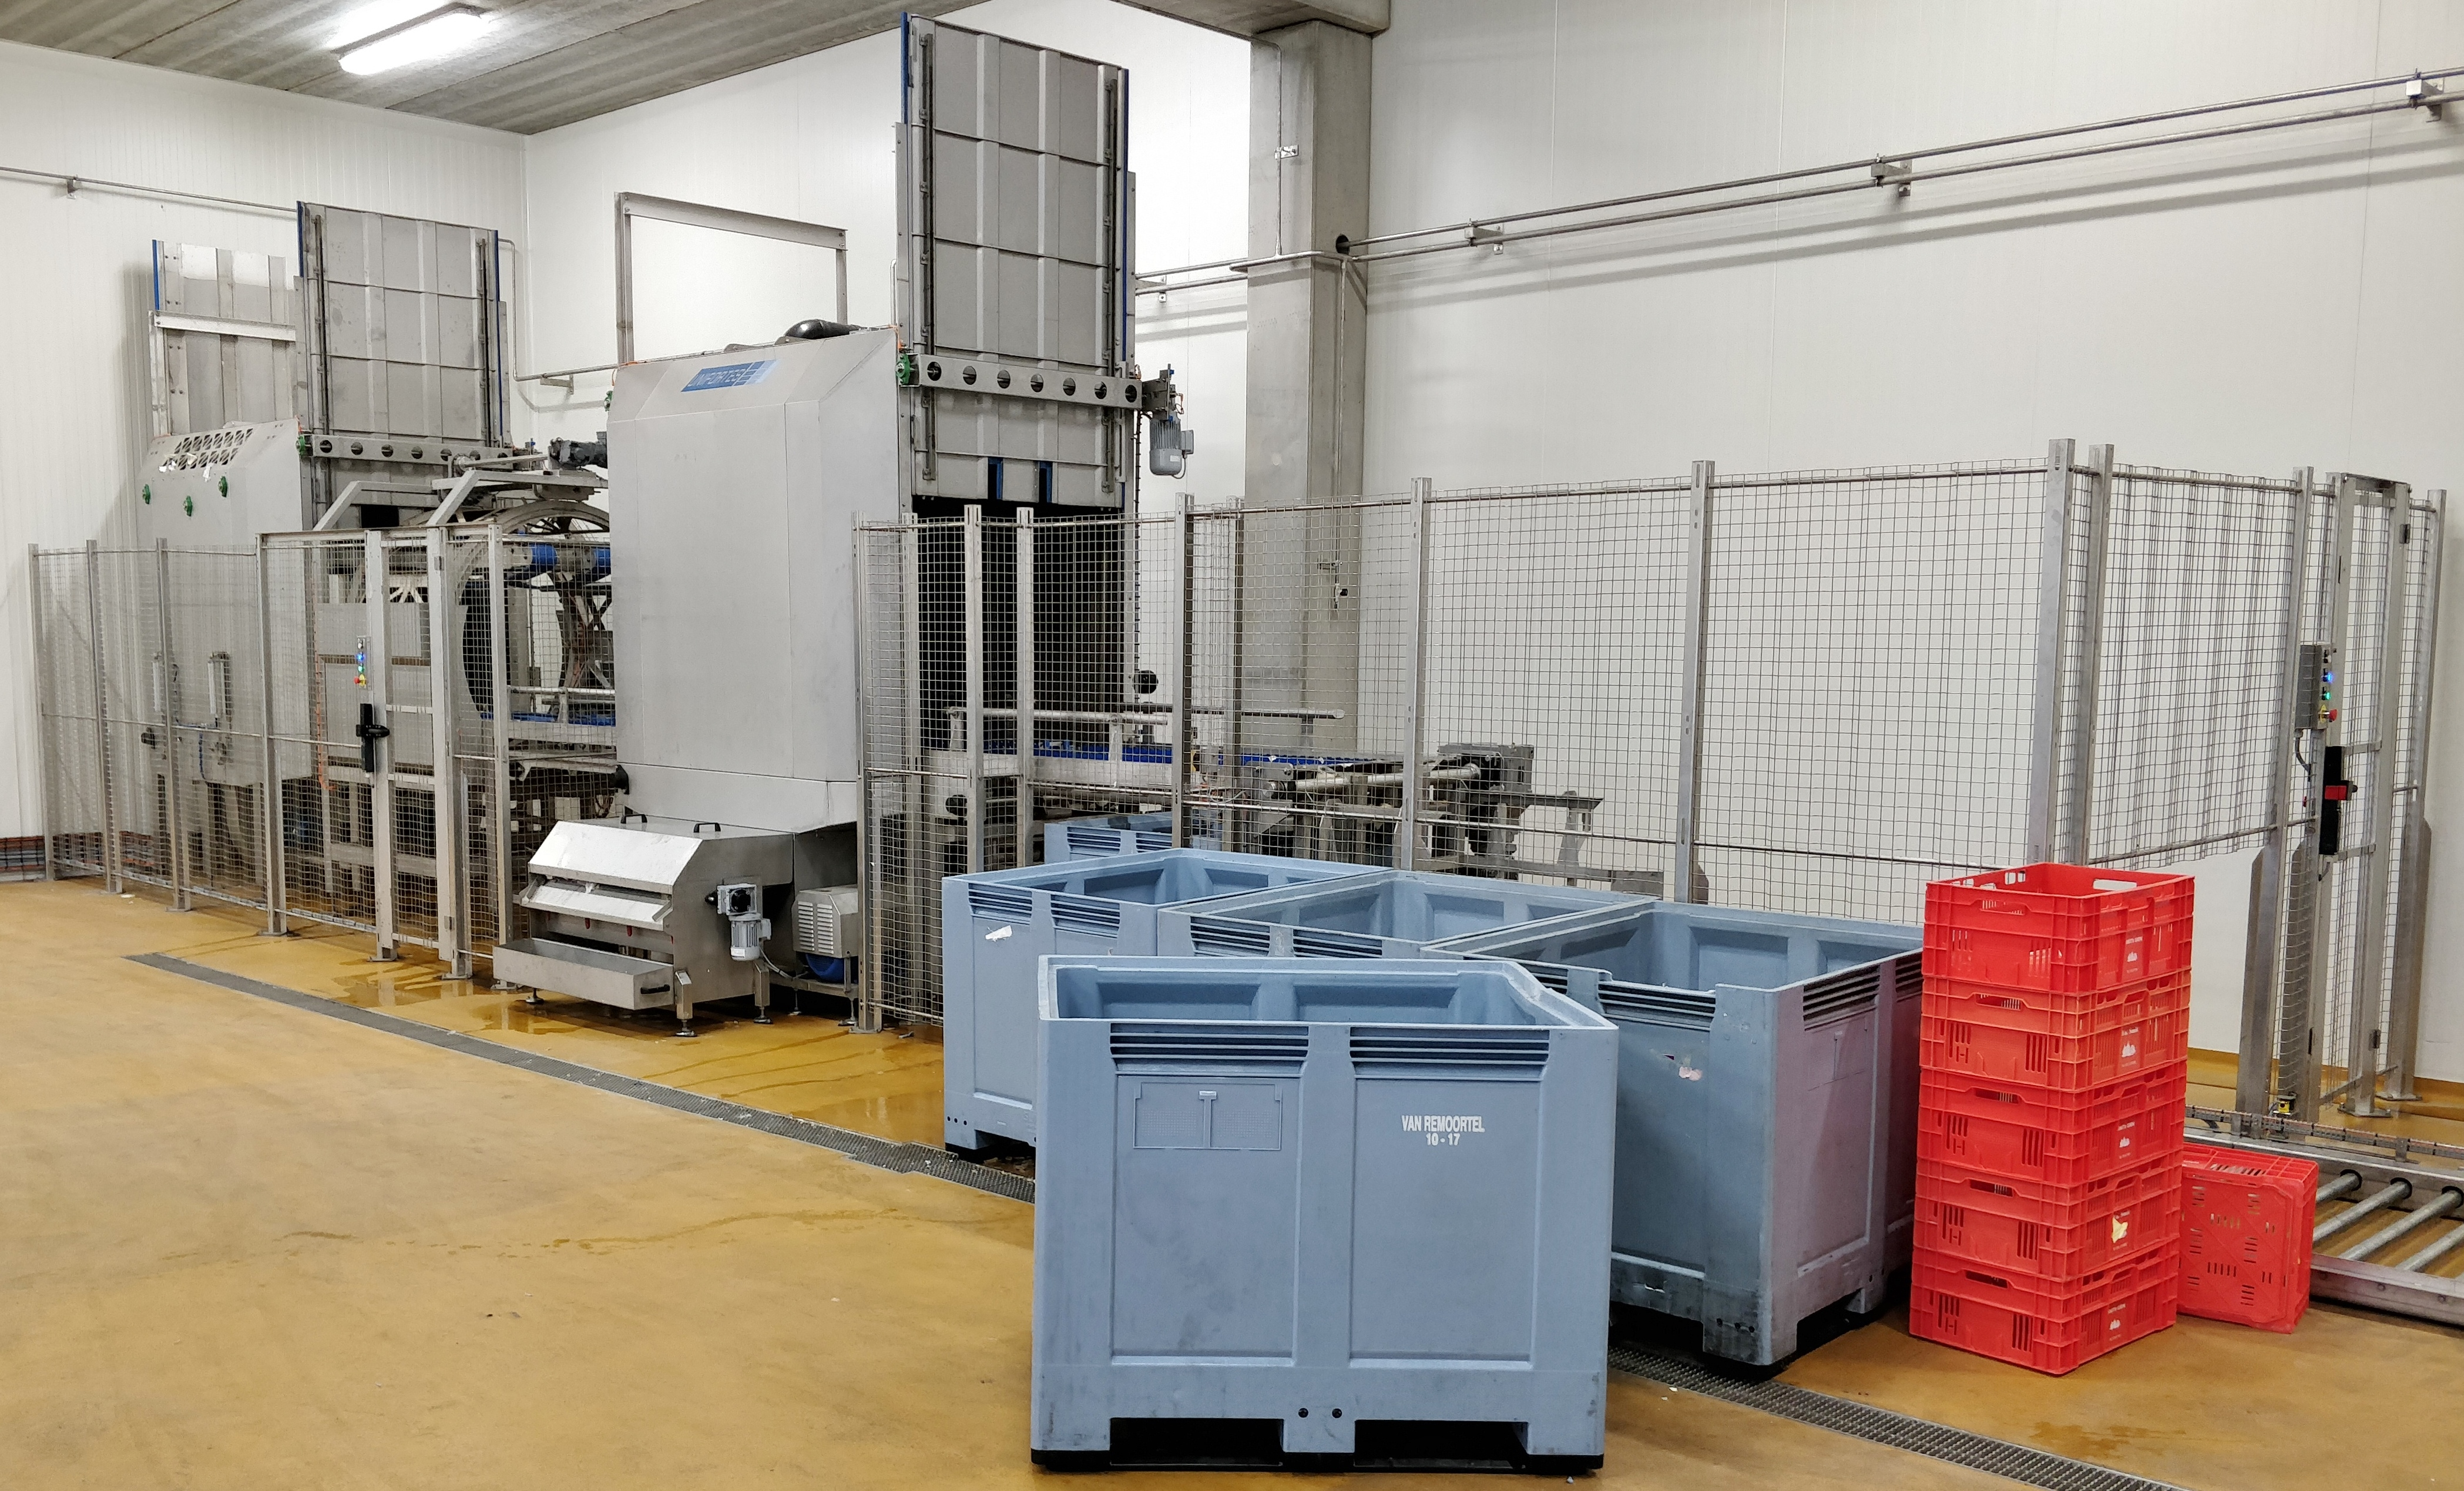 WASHING MACHINES FOR CONTAINER WASHERS